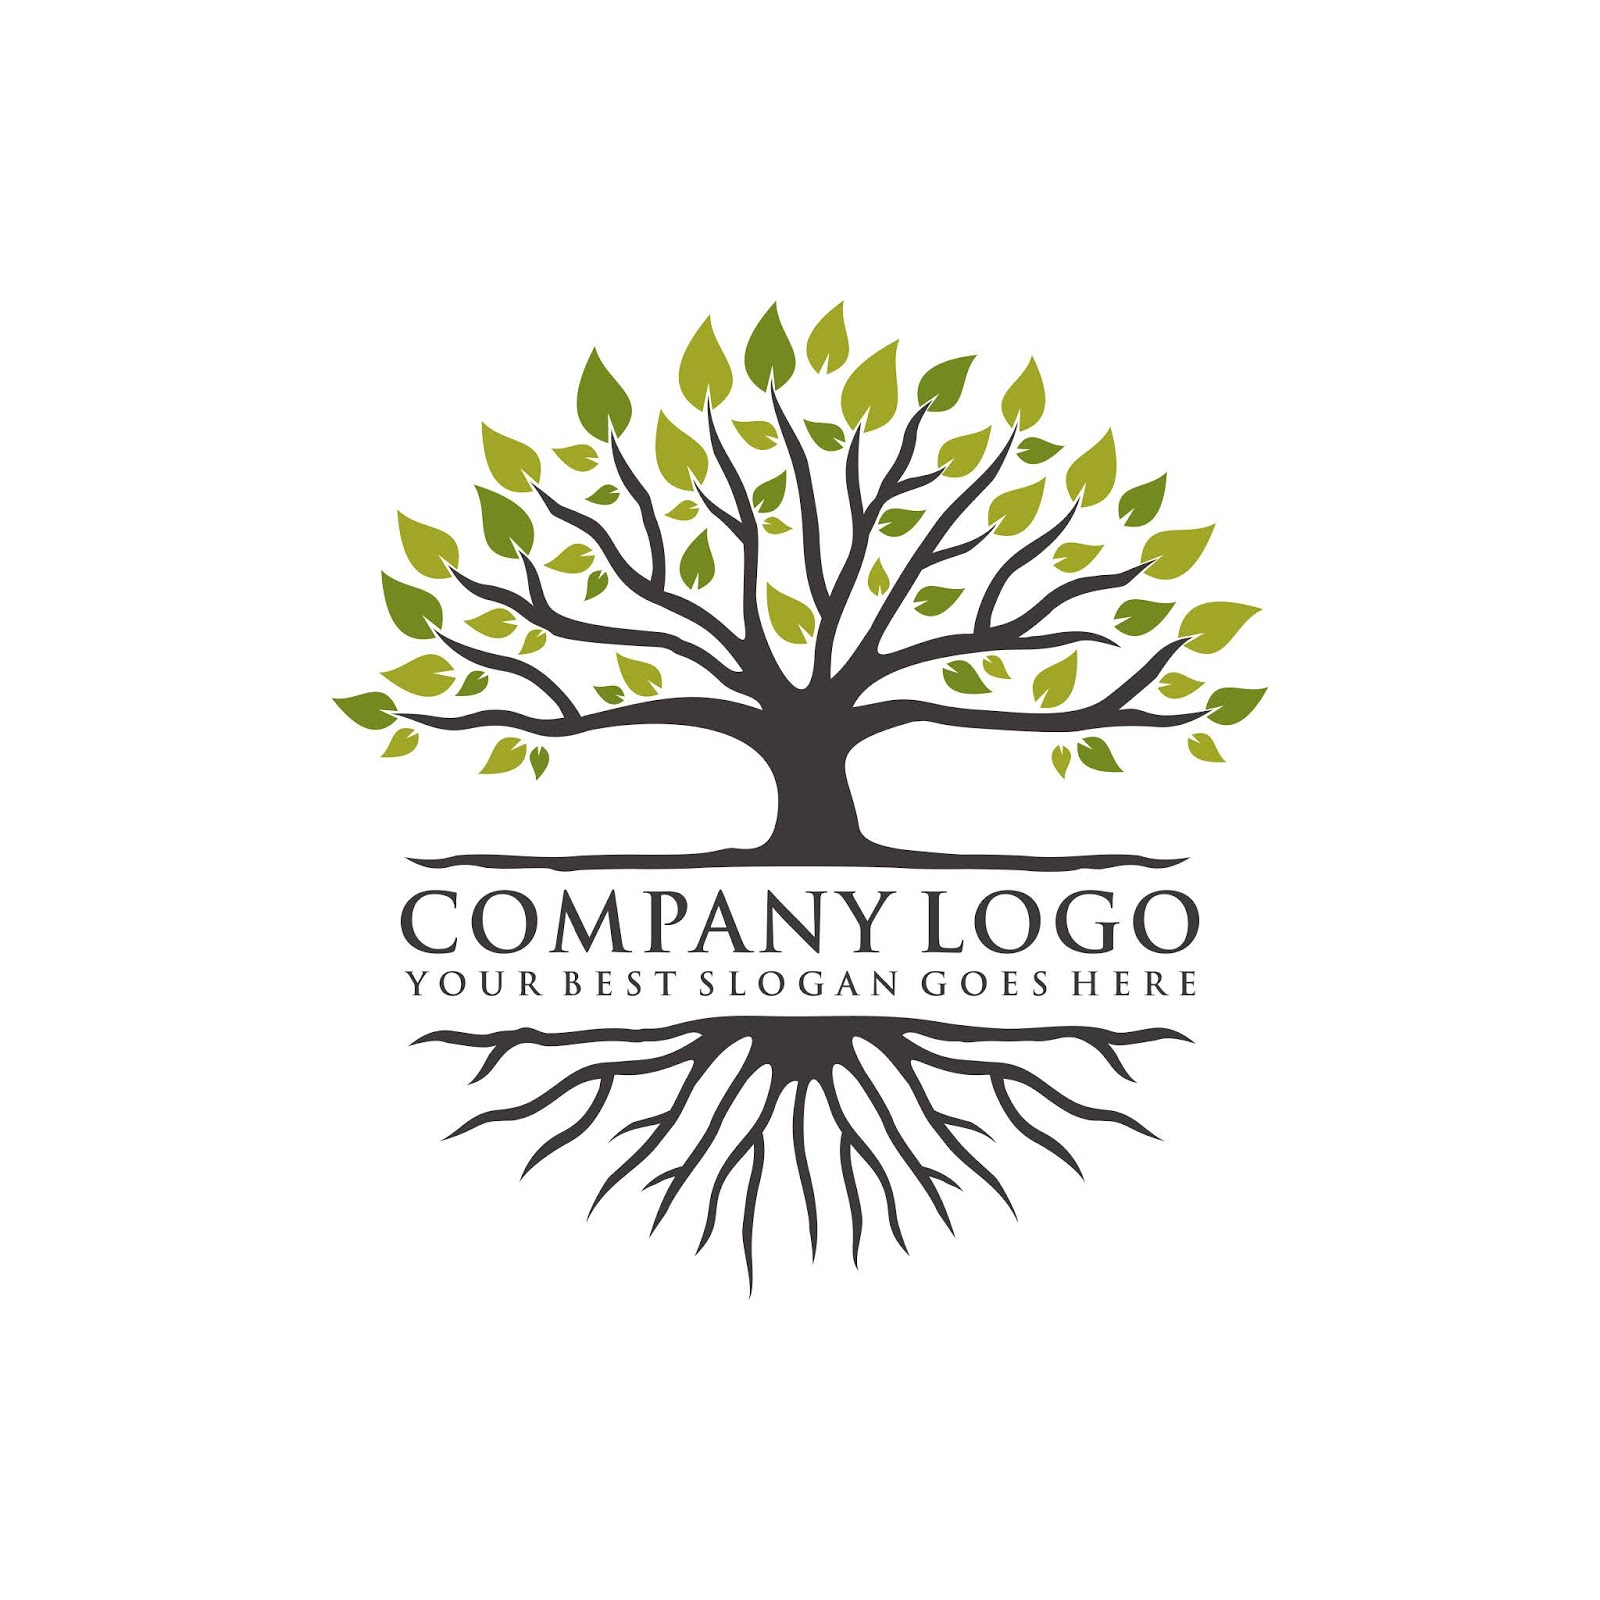 Tree Logo Design Free Download Vector CDR, AI, EPS and PNG Formats